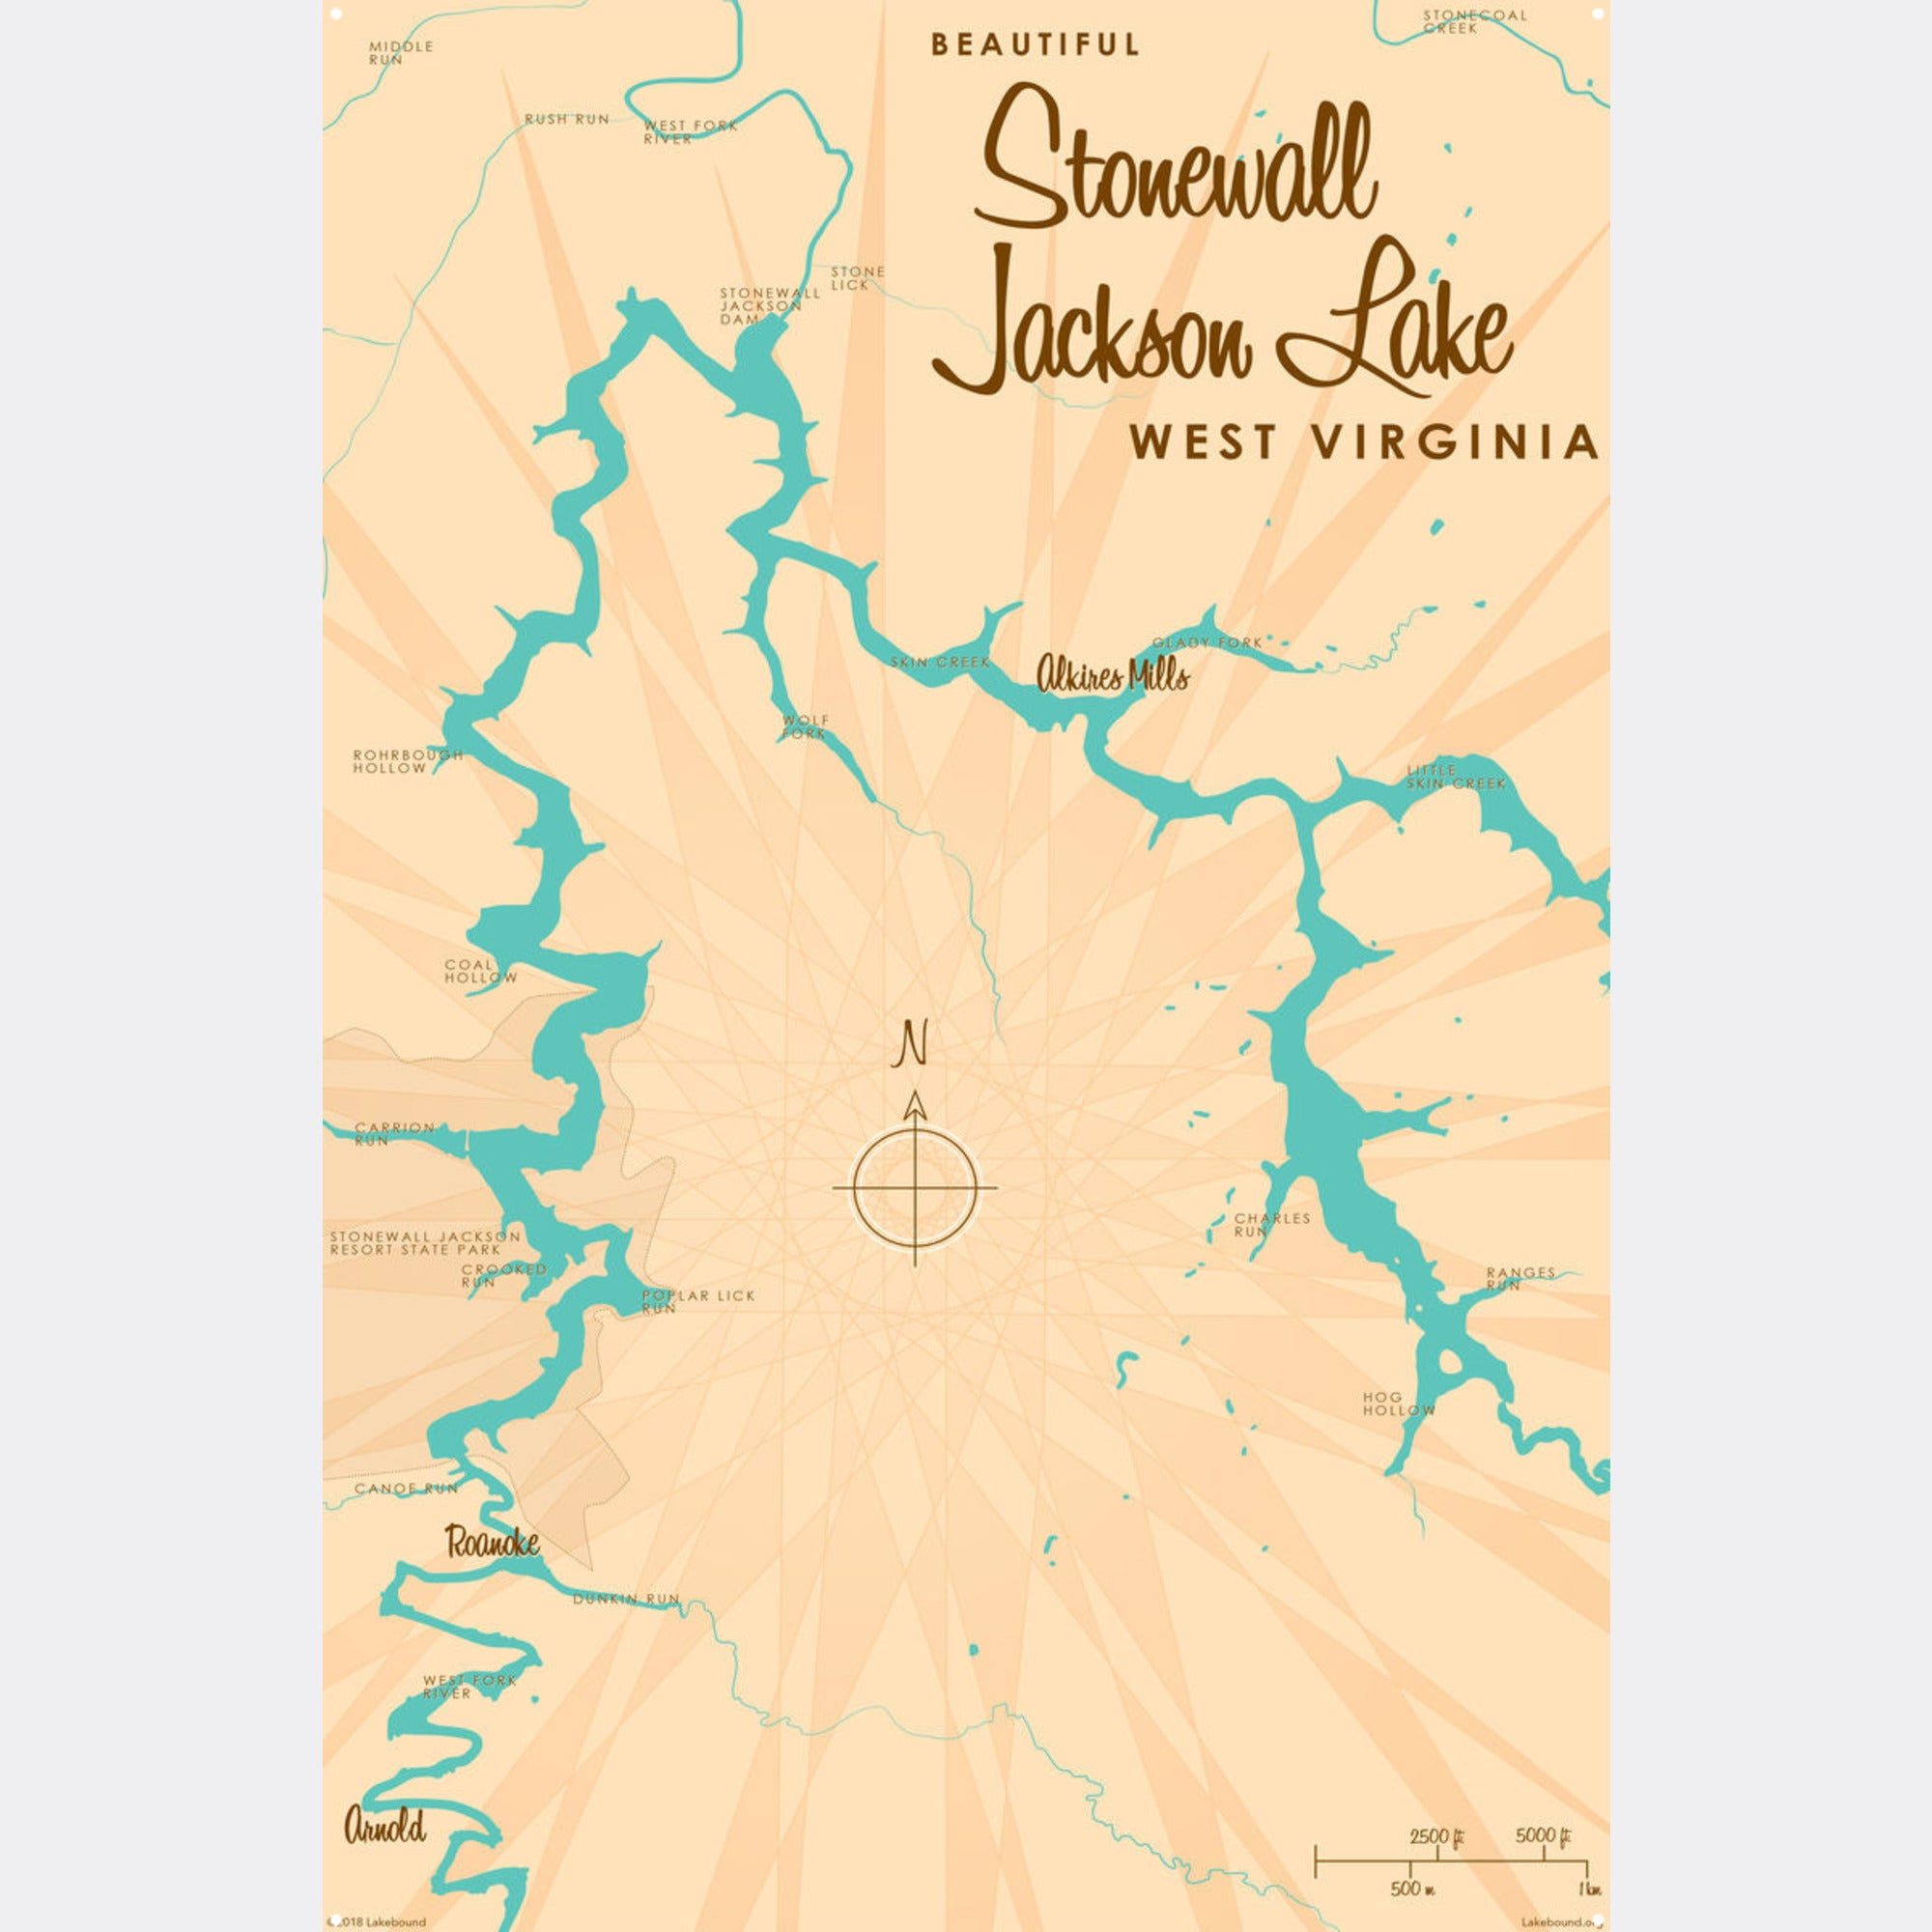 stonewall jackson lake map Stonewall Jackson Lake West Virginia Metal Sign Map Art Lakebound stonewall jackson lake map